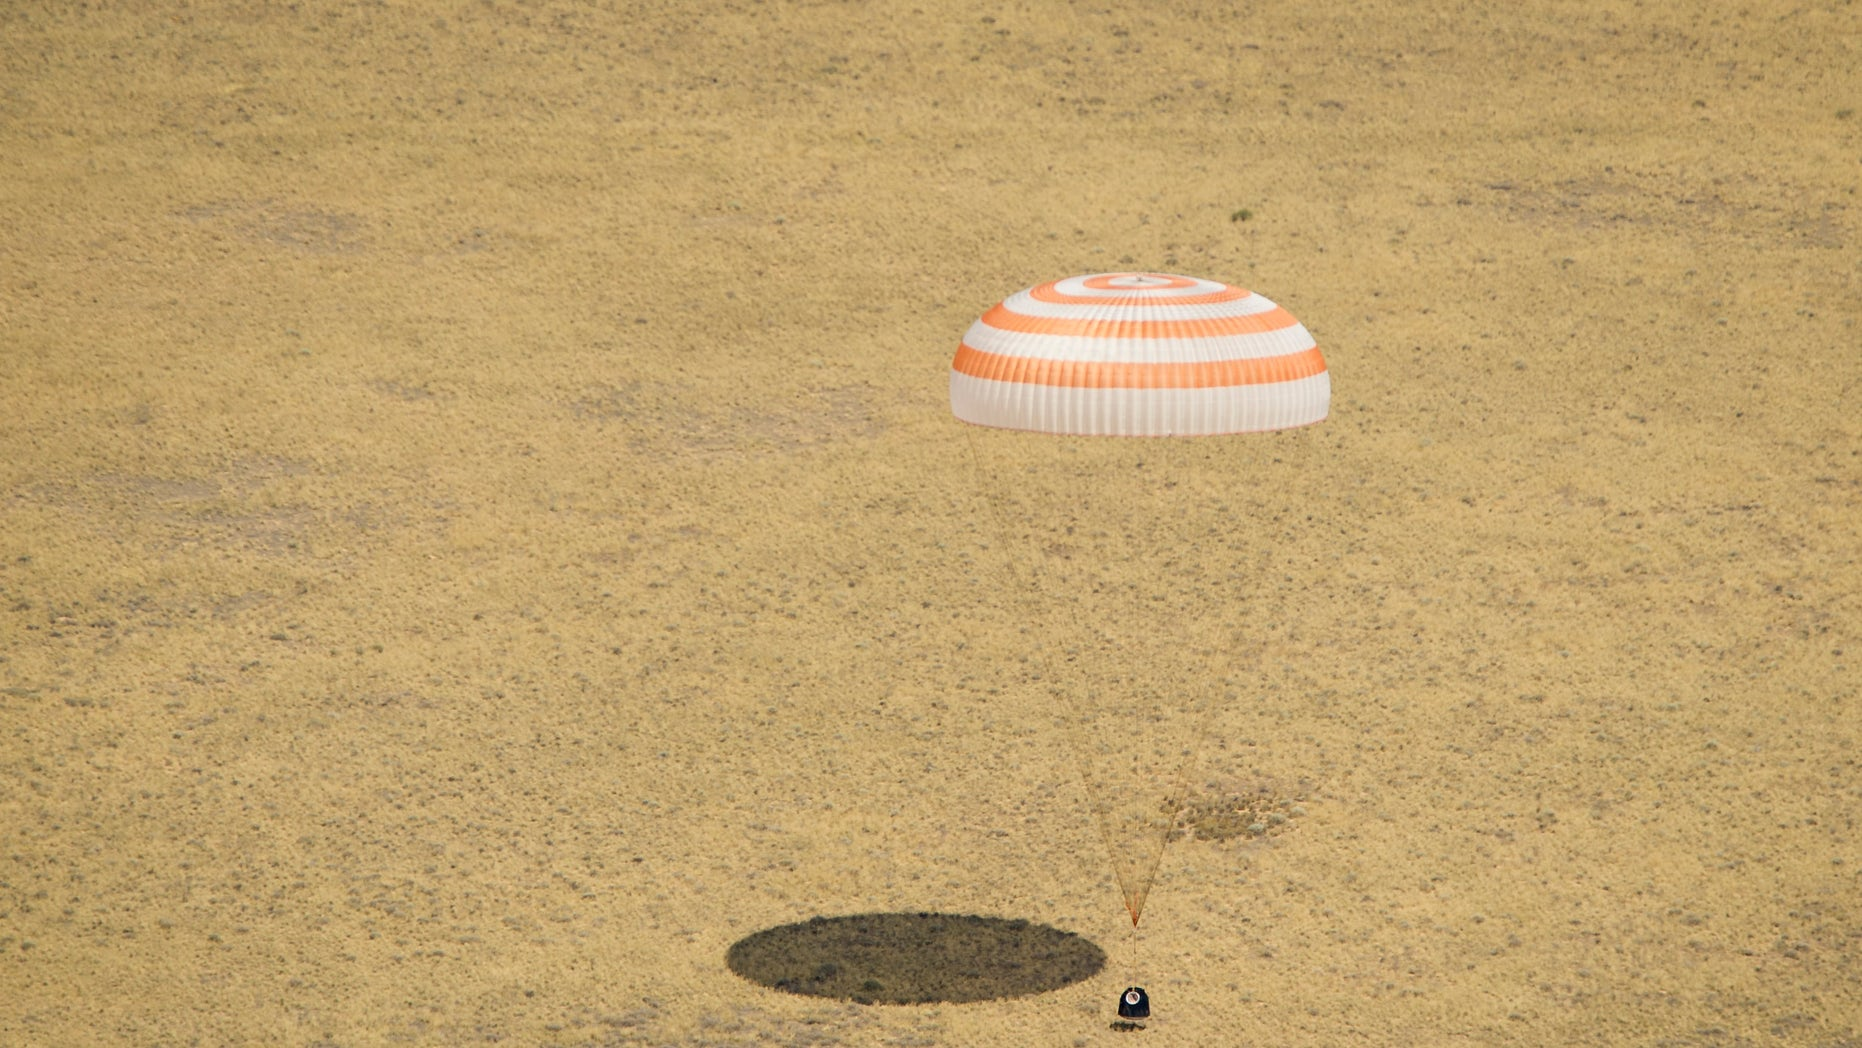 July 1, 2012: The Soyuz TMA-03M spacecraft is seen as it lands with Expedition 31 Commander Oleg Kononenko of Russia and Flight Engineers Don Pettit of NASA and Andre Kuipers of the European Space Agency in a remote area near the town of Zhezkazgan, Kazakhstan.